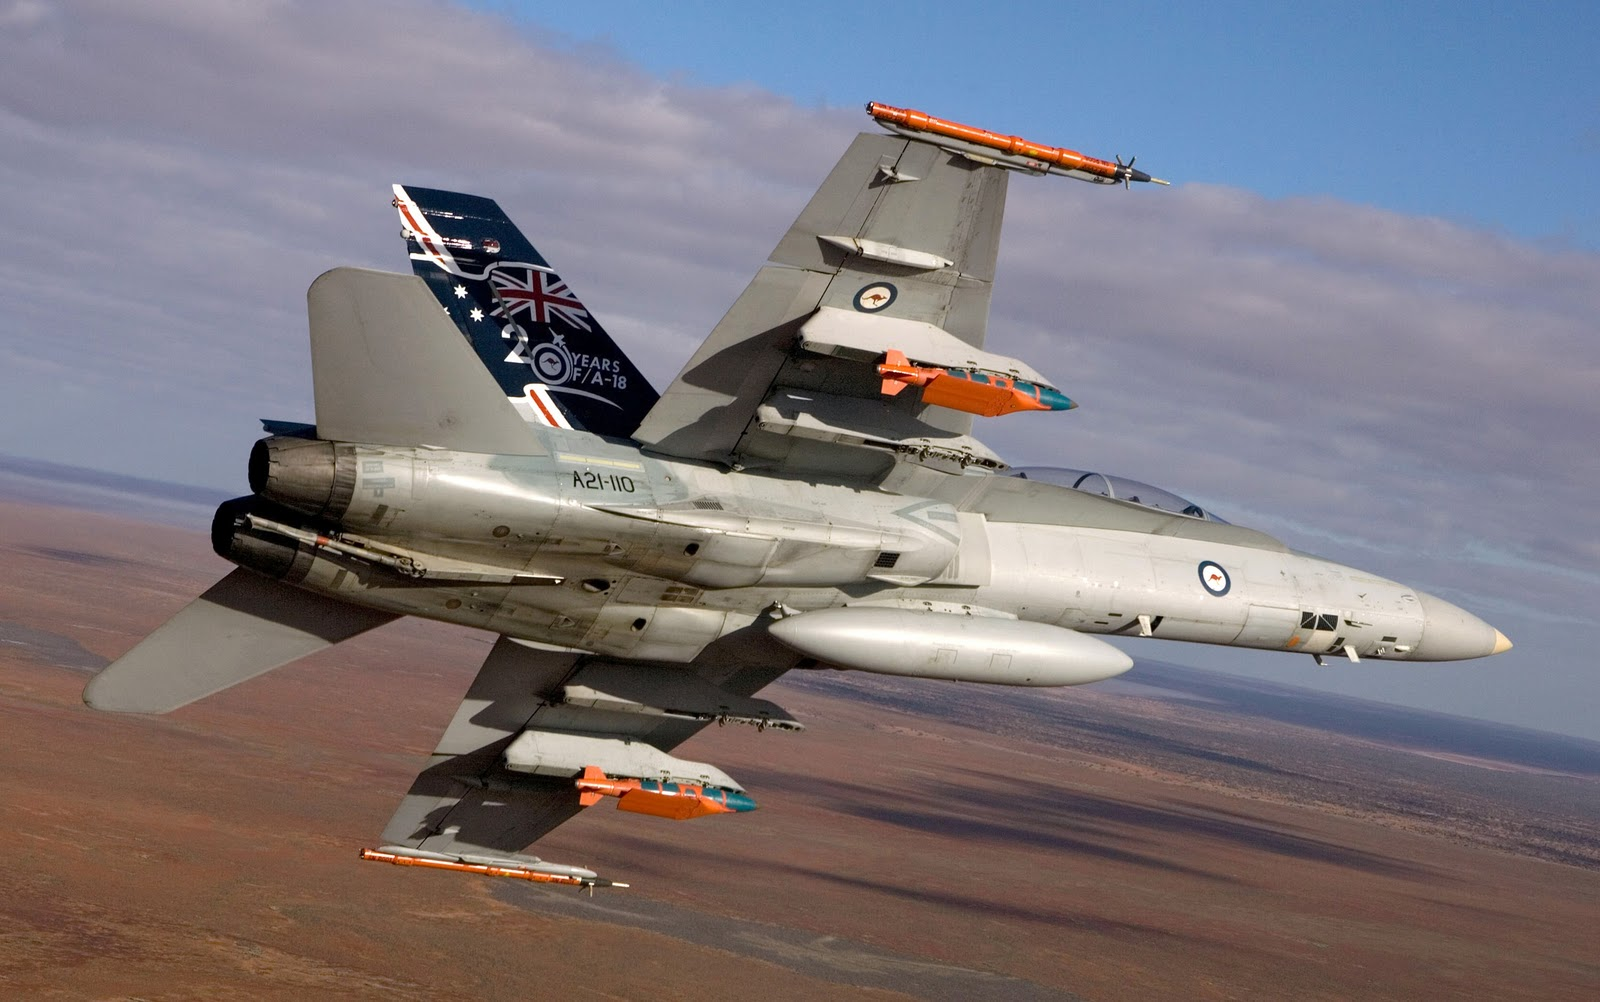 boeing f/a 18 hornet of raaf aircraft wallpaper 1886 - aeronef